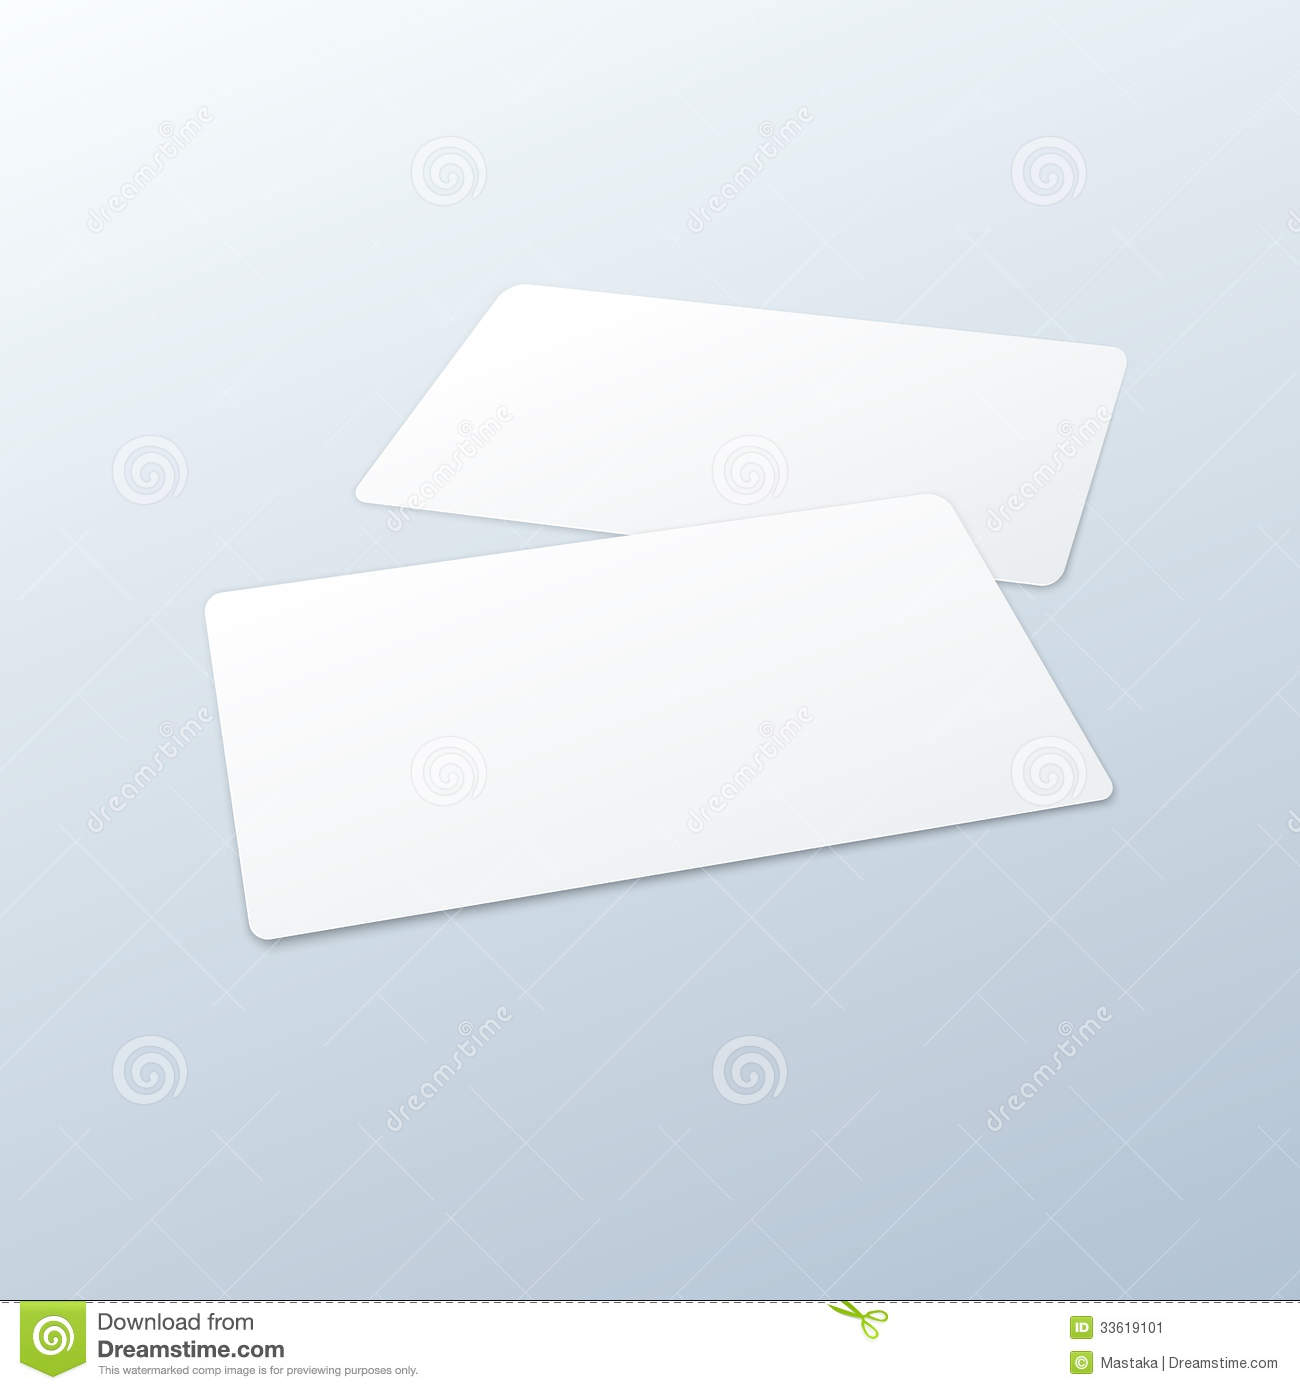 Business Cards Blank Mockup Template Stock Image - Image ...